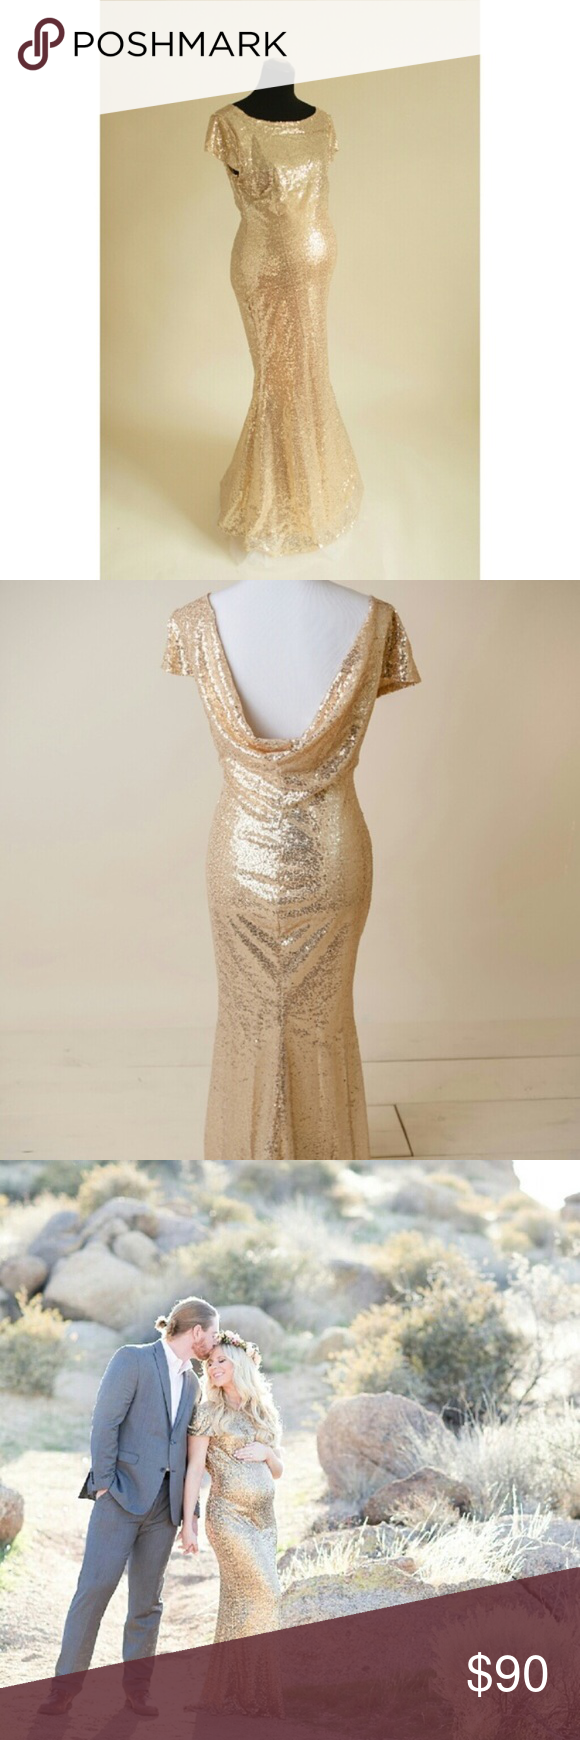 a9f01236411df Gold maternity gown Brand new gold sequin maternity gown. Medium size. Dresses  Maxi